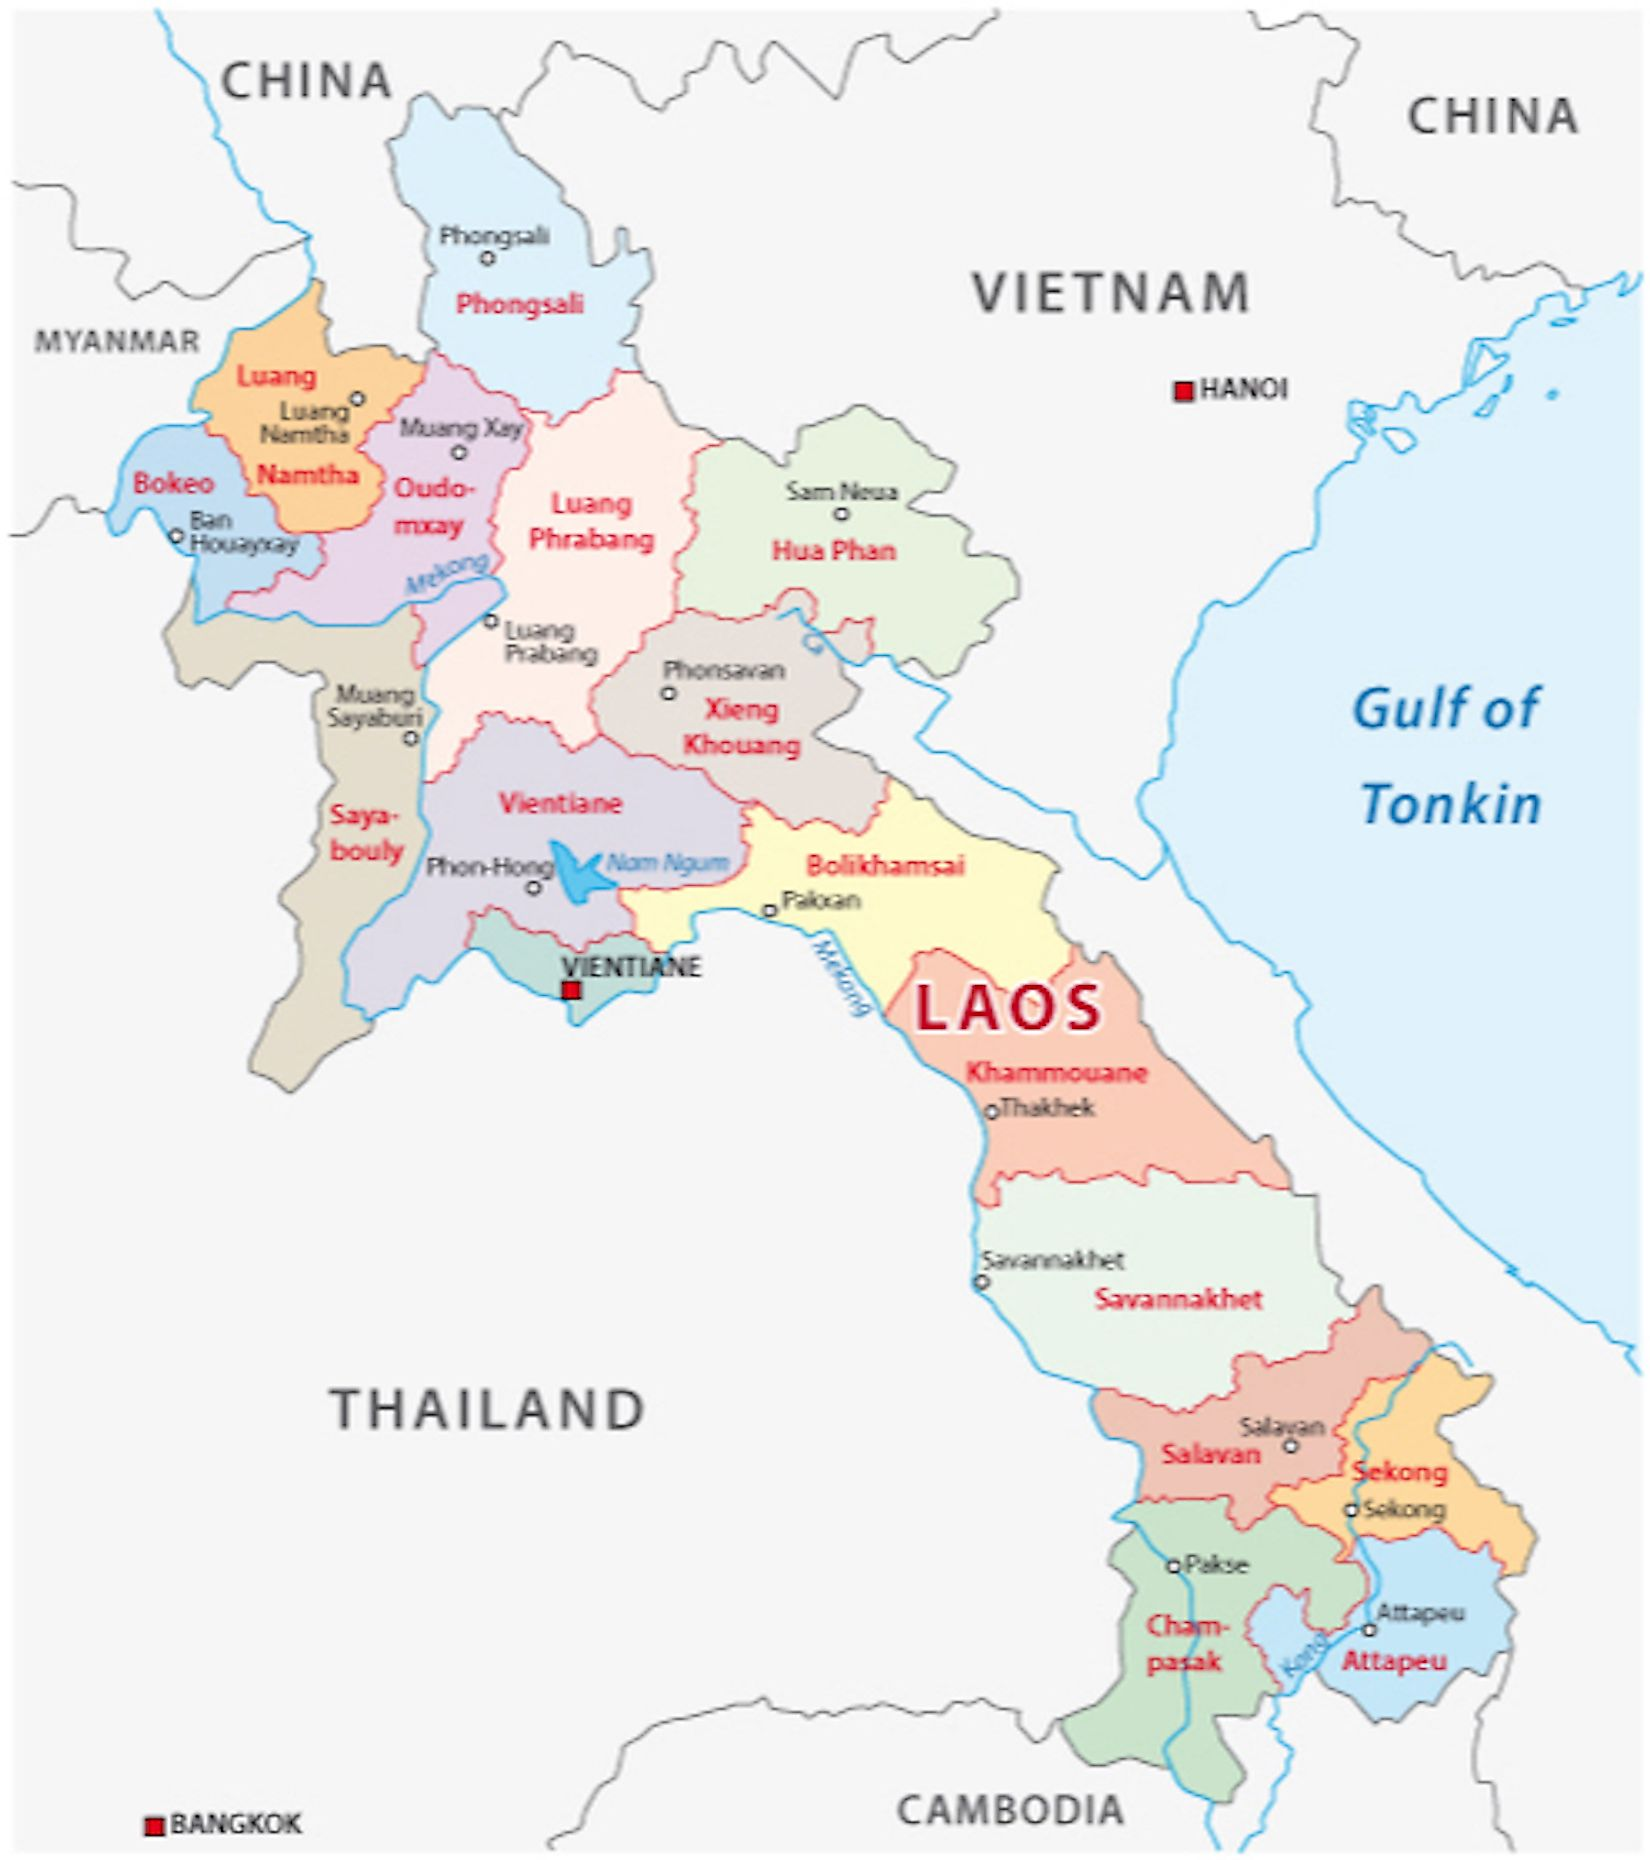 Location Map of Laos showing the 17 provinces, their capitals, and the national capital of Vientiane.